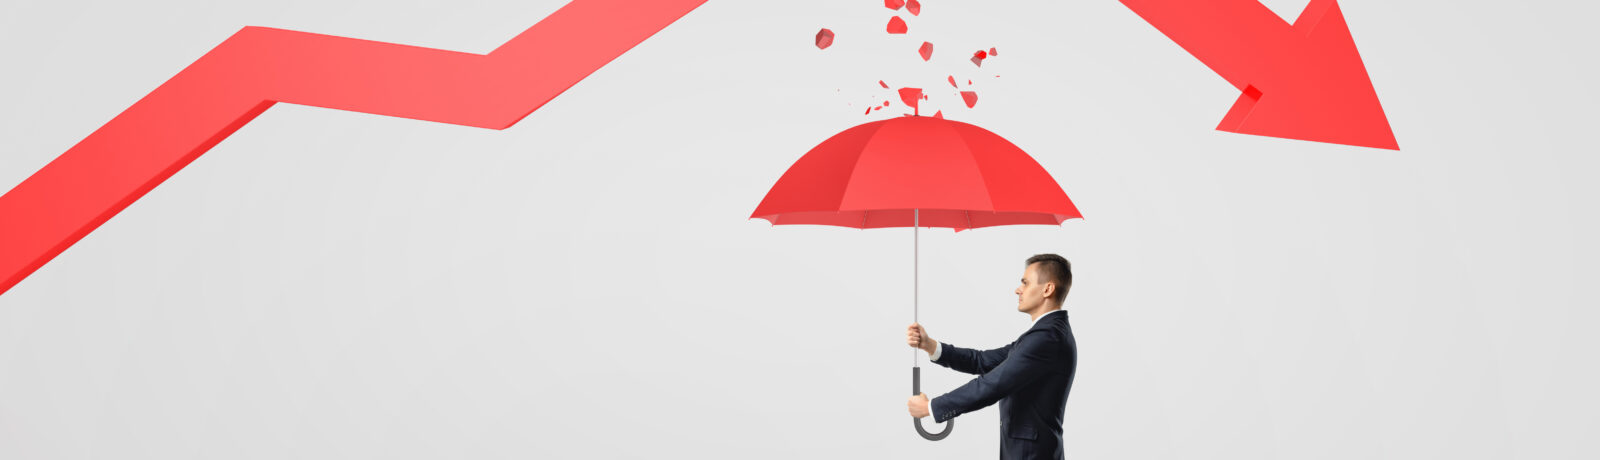 Businessman protecting himself from a broken statistical trendline with an umbrella.